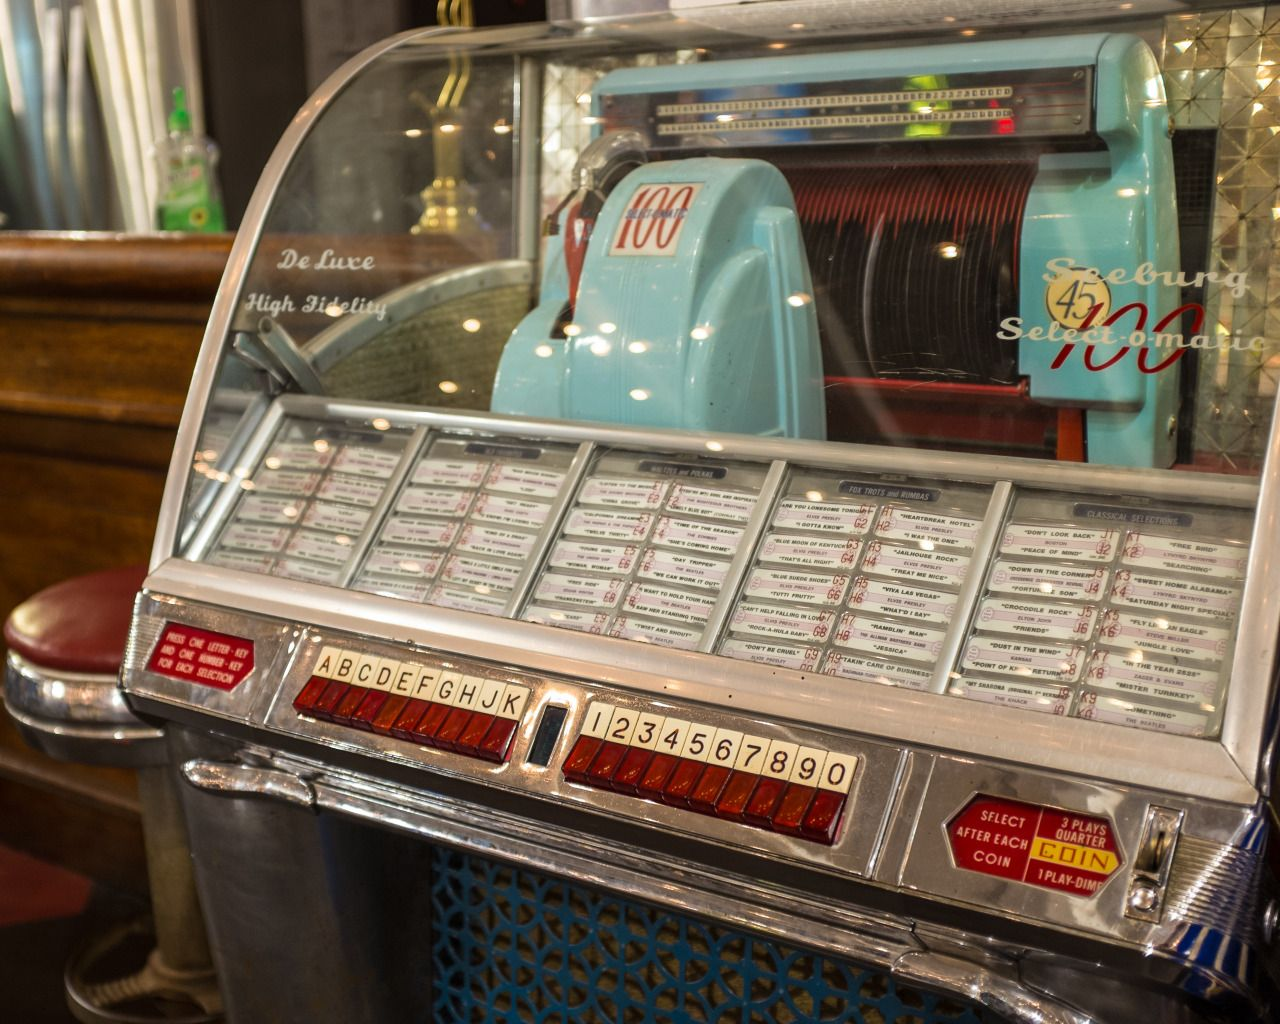 """1957 Seeburg Select-o-matic (as used in """"Happy Days"""")Asbury Park boardwalk, New Jersey USA"""